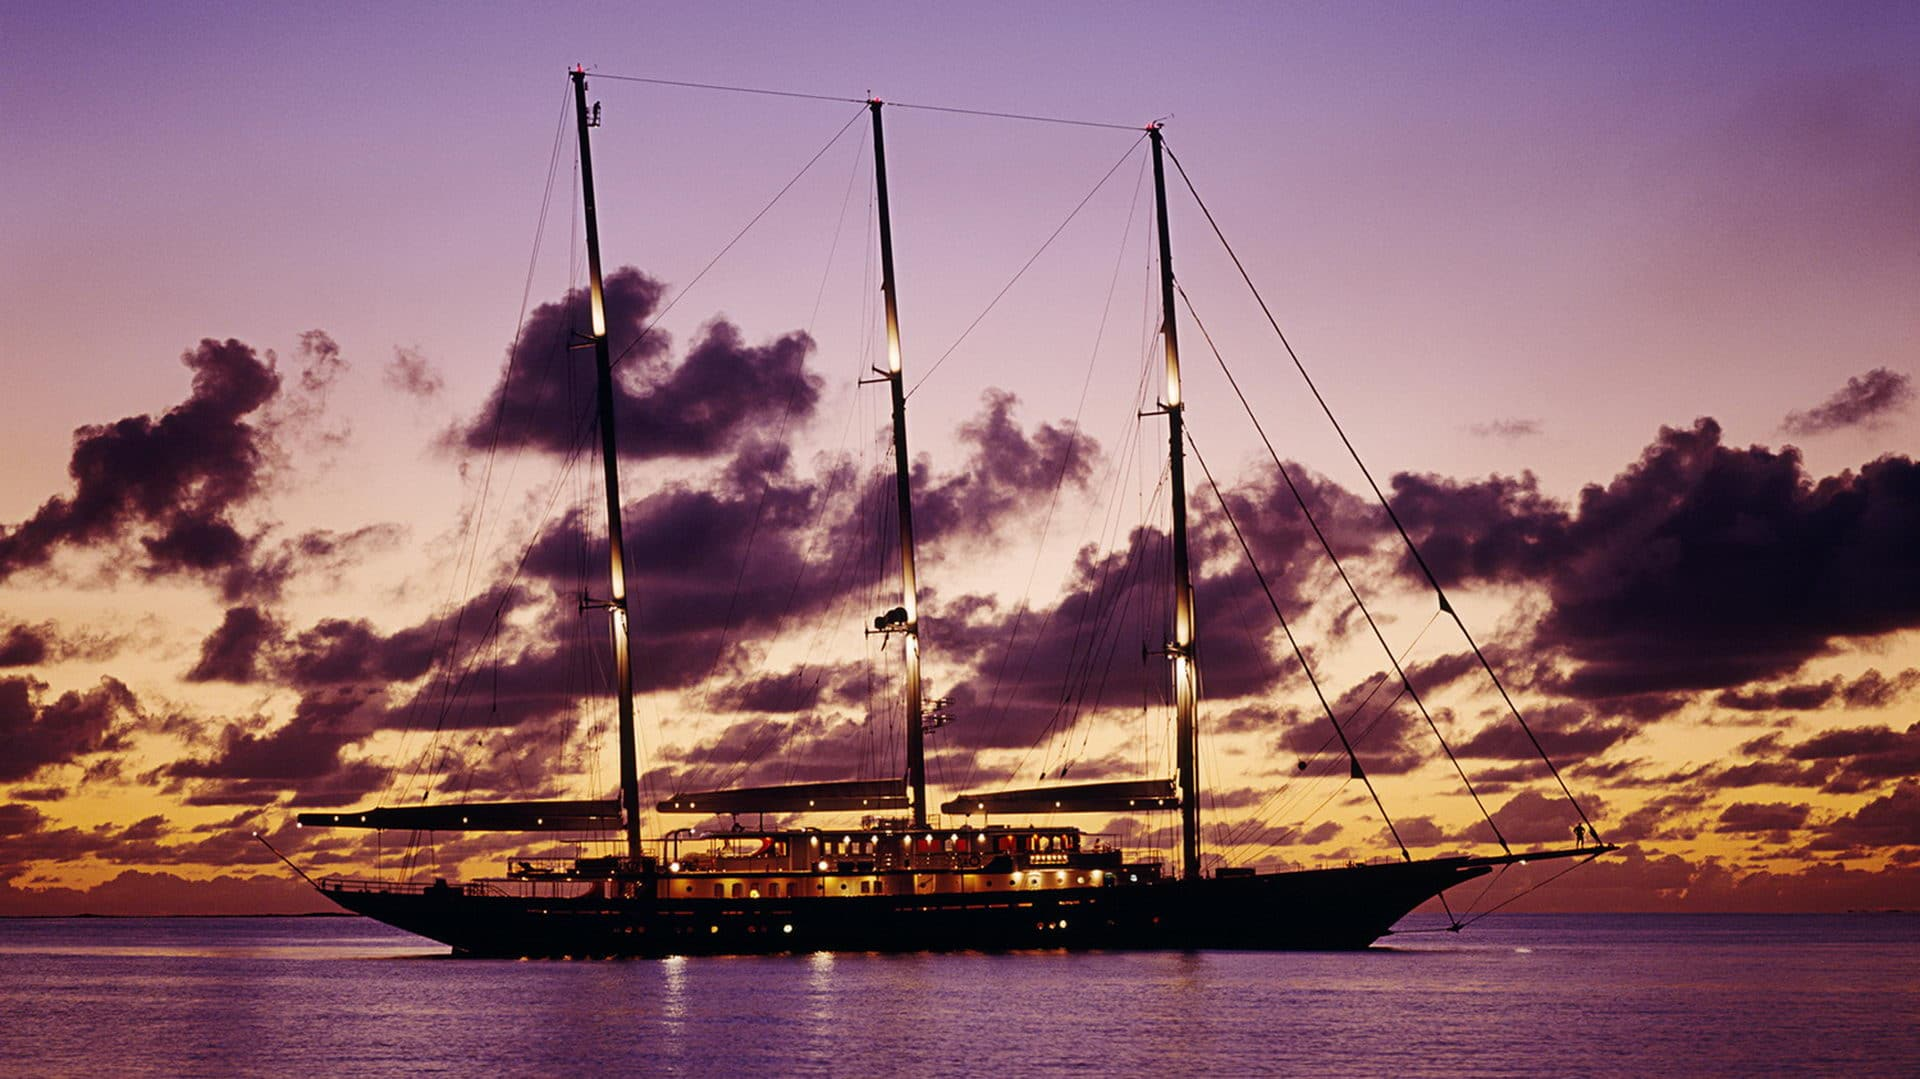 90m Royal Huisman 3-masted Schooner At Sunset